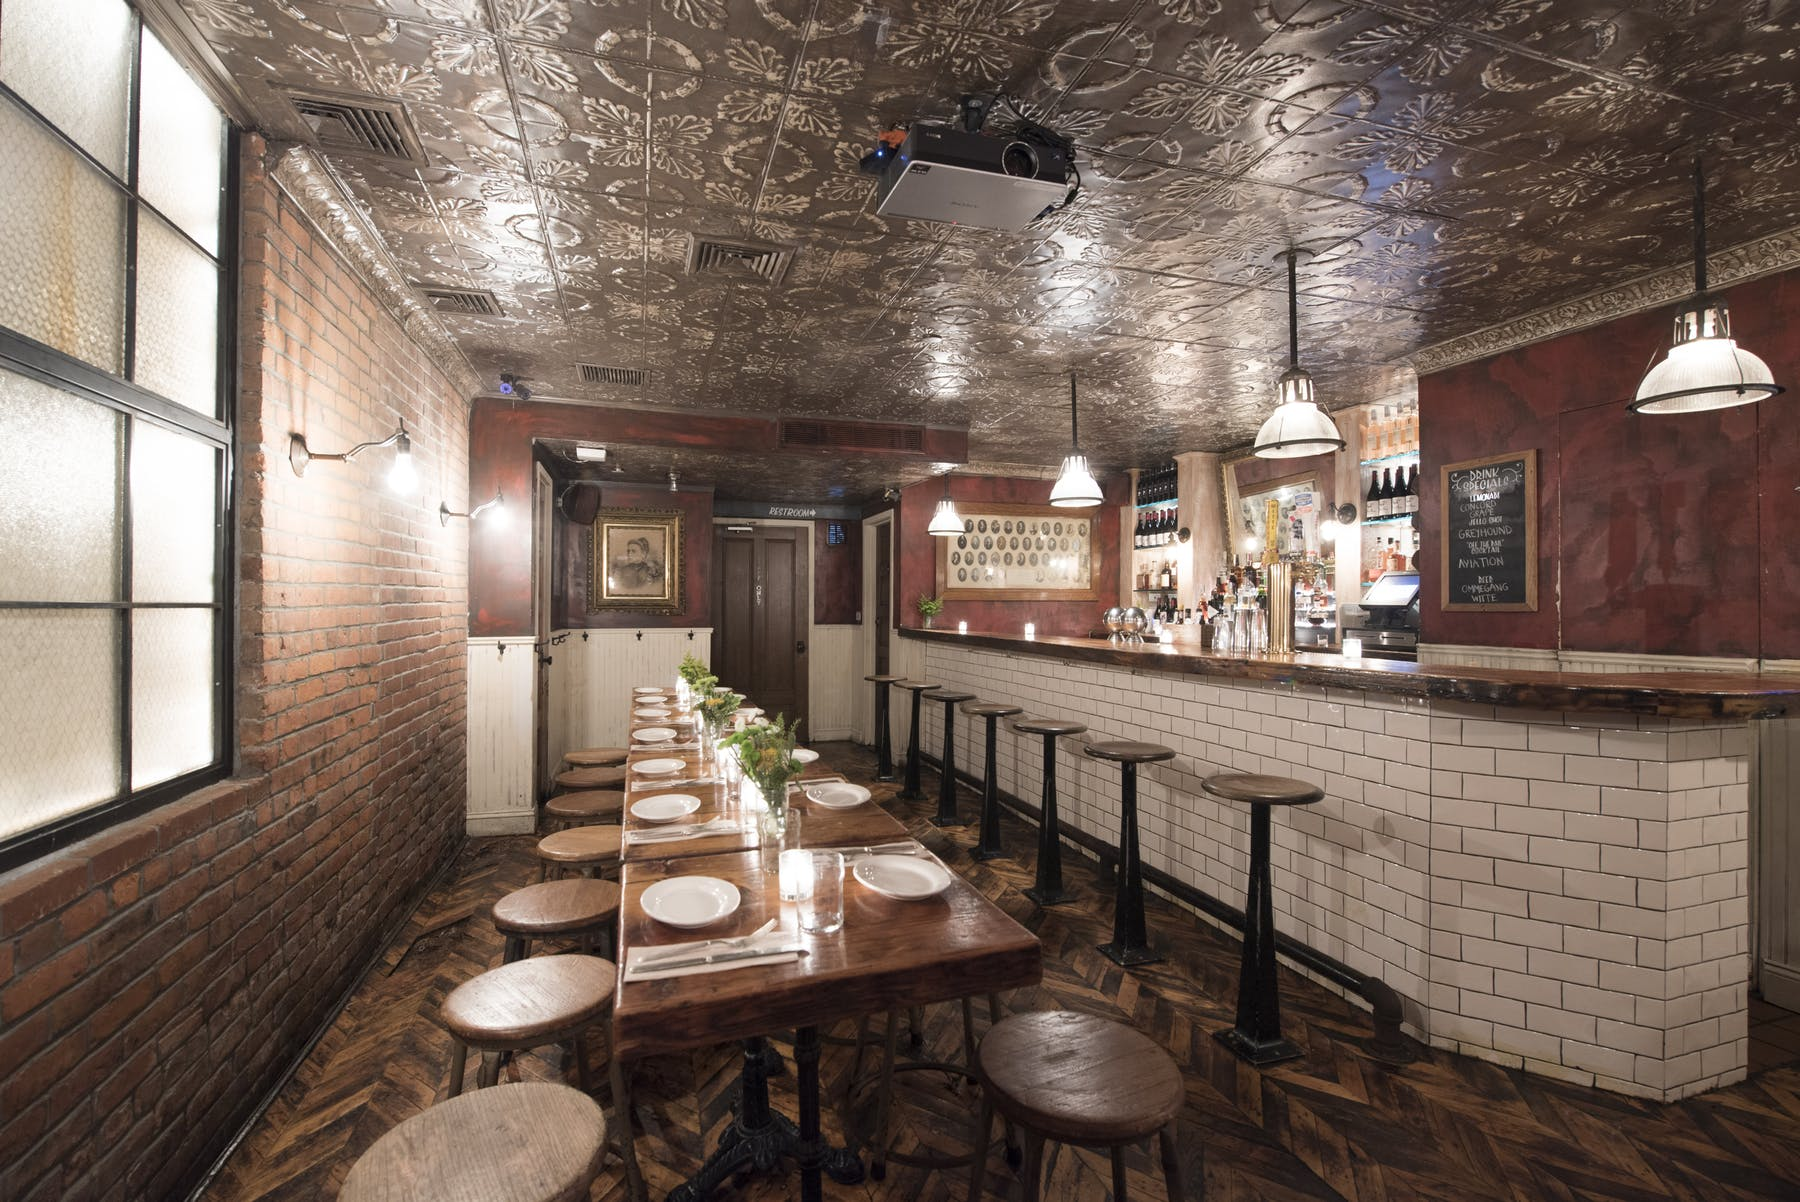 Full Buyout event space at The Meatball Shop - Chelsea in New York City, NYC, NY/NJ Area